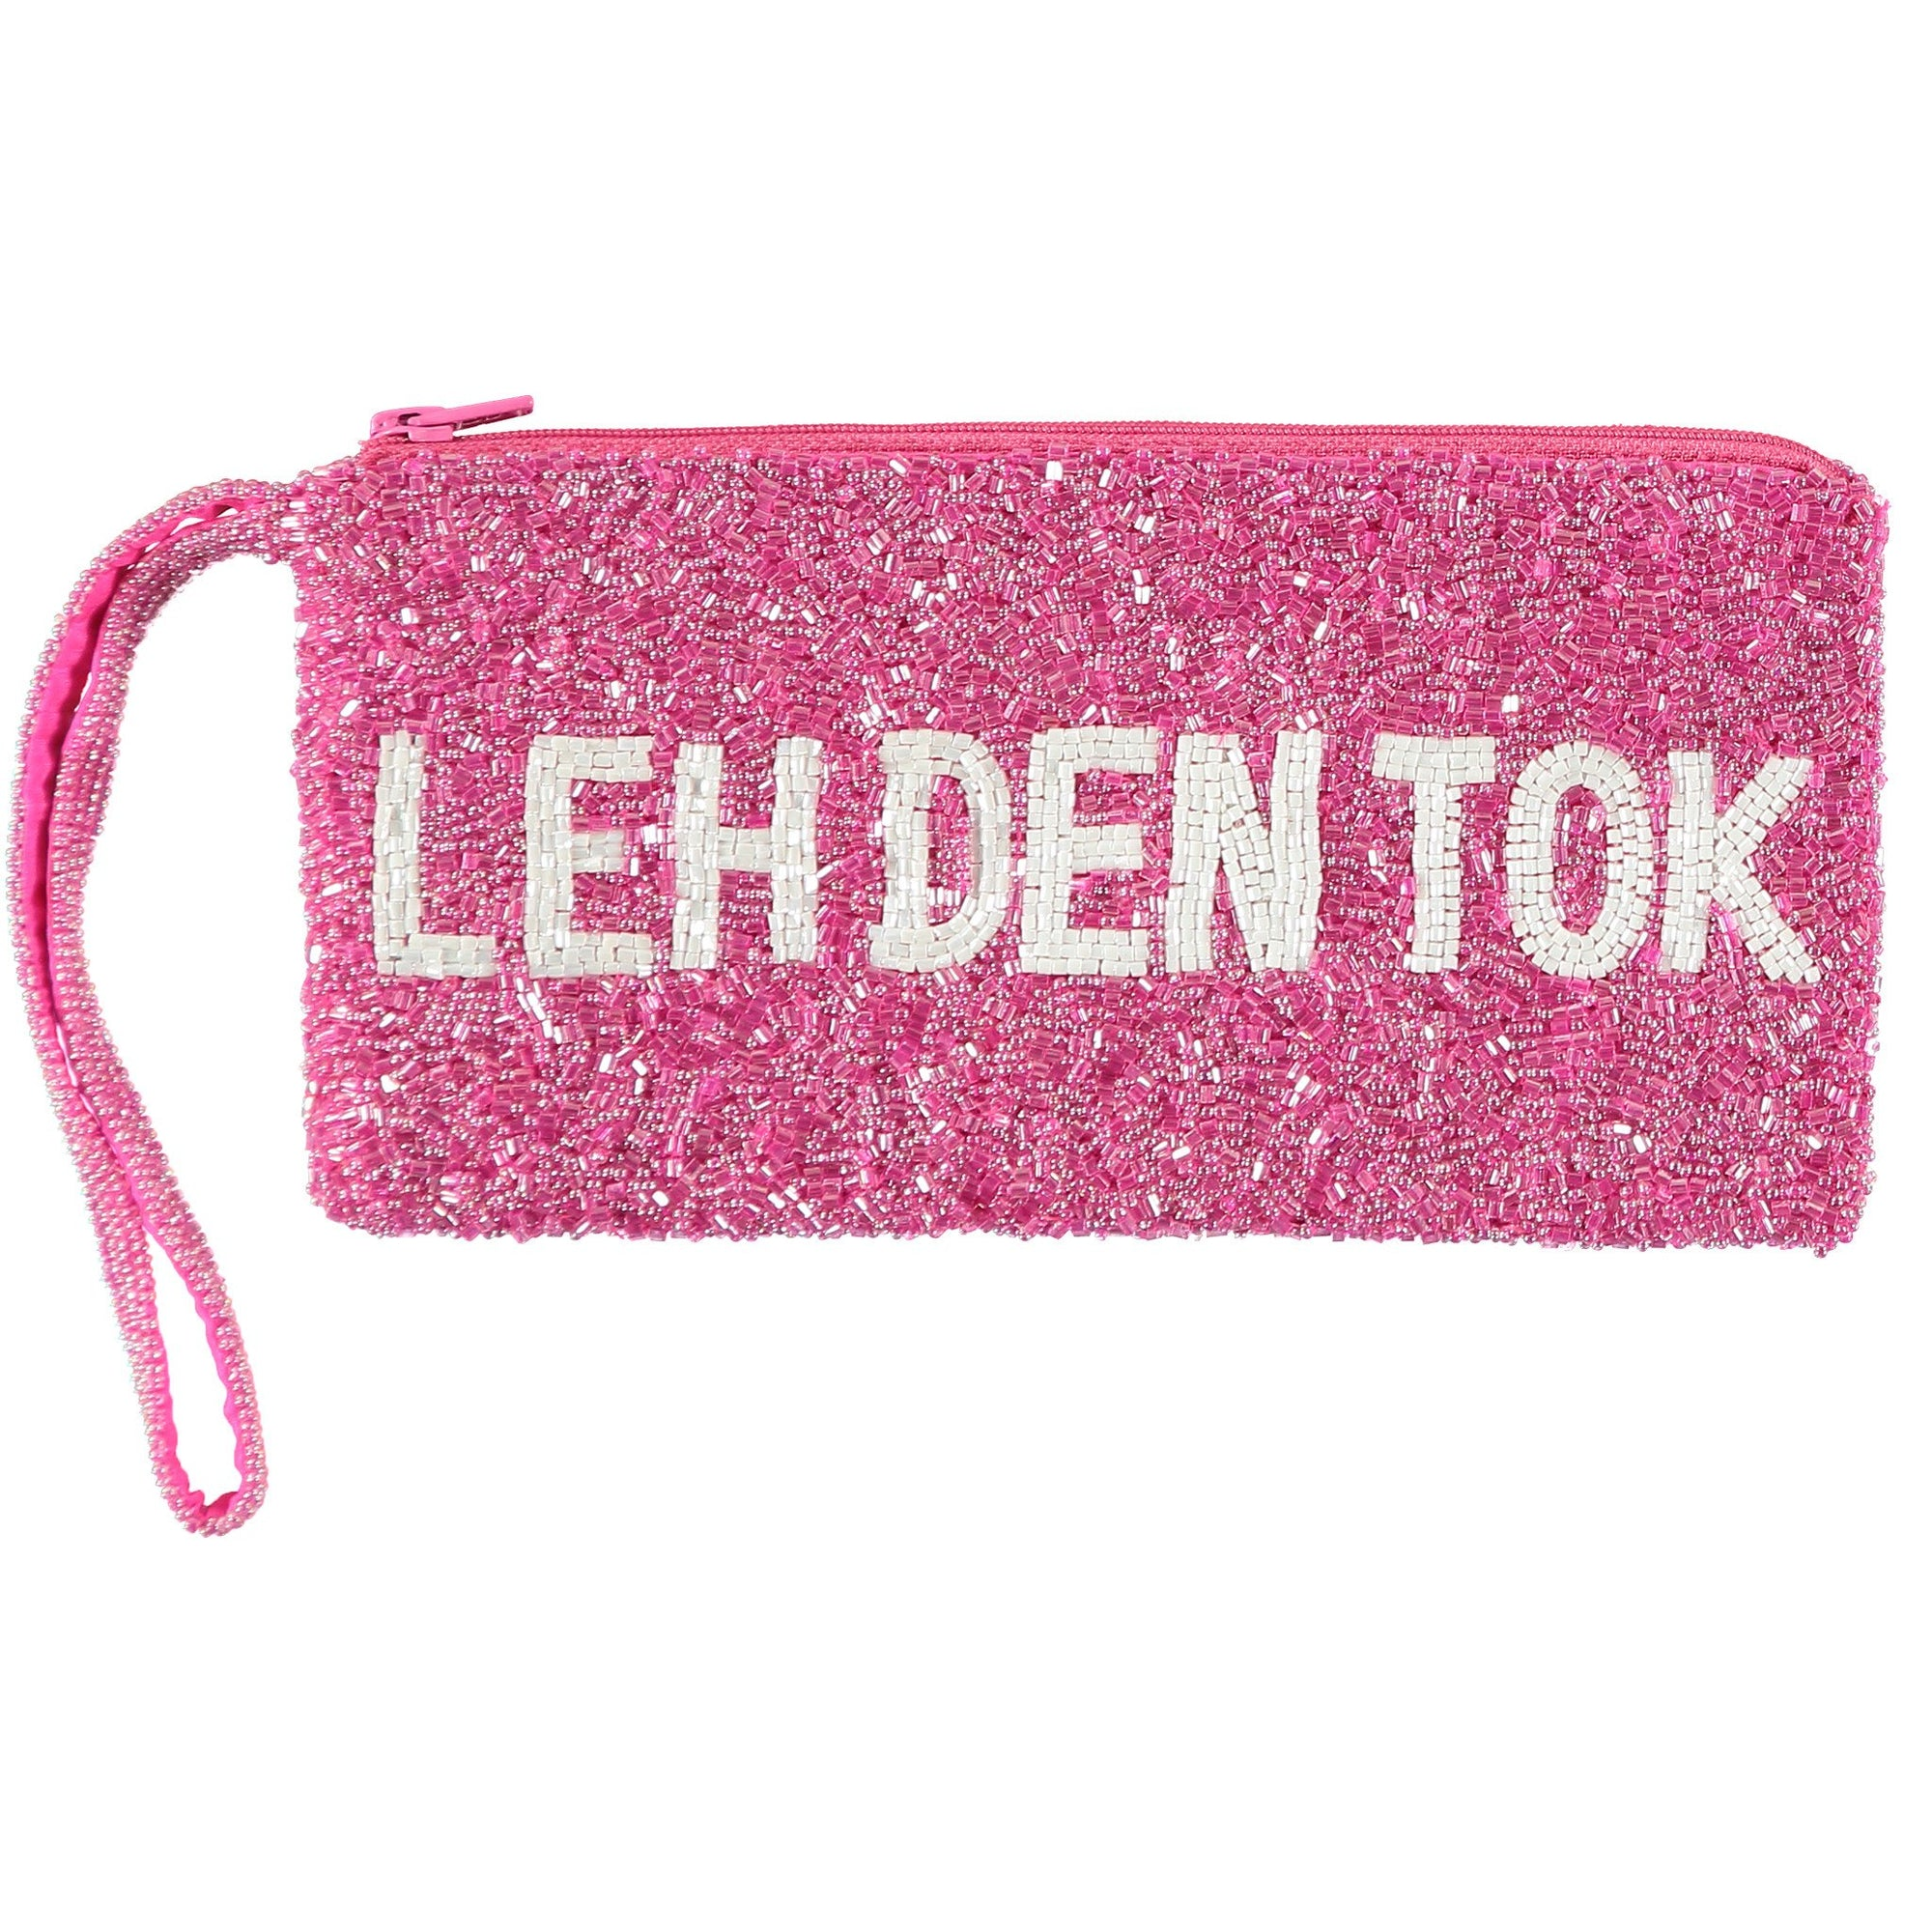 Leh Den Tok Clutch  (Sierra Leonean Krio) (Let Them Talk) Clutch